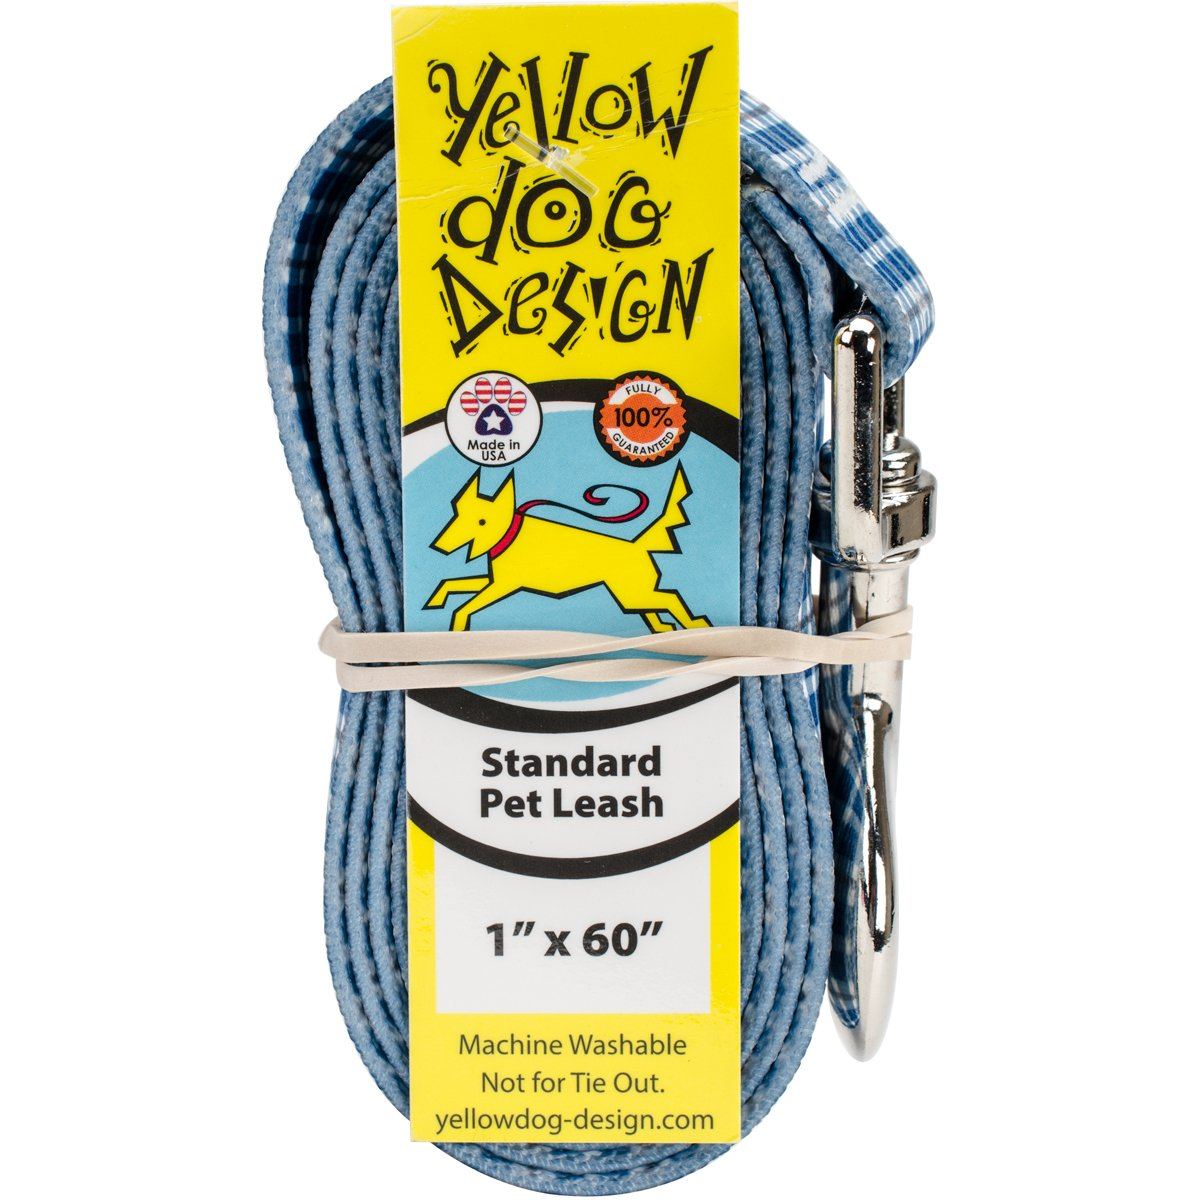 Yellow Dog Design Preppy Boy Plaid Dog Leash-Size Large-1 Inch Wide and 5 feet (60 inches) Long by Yellow Dog Design